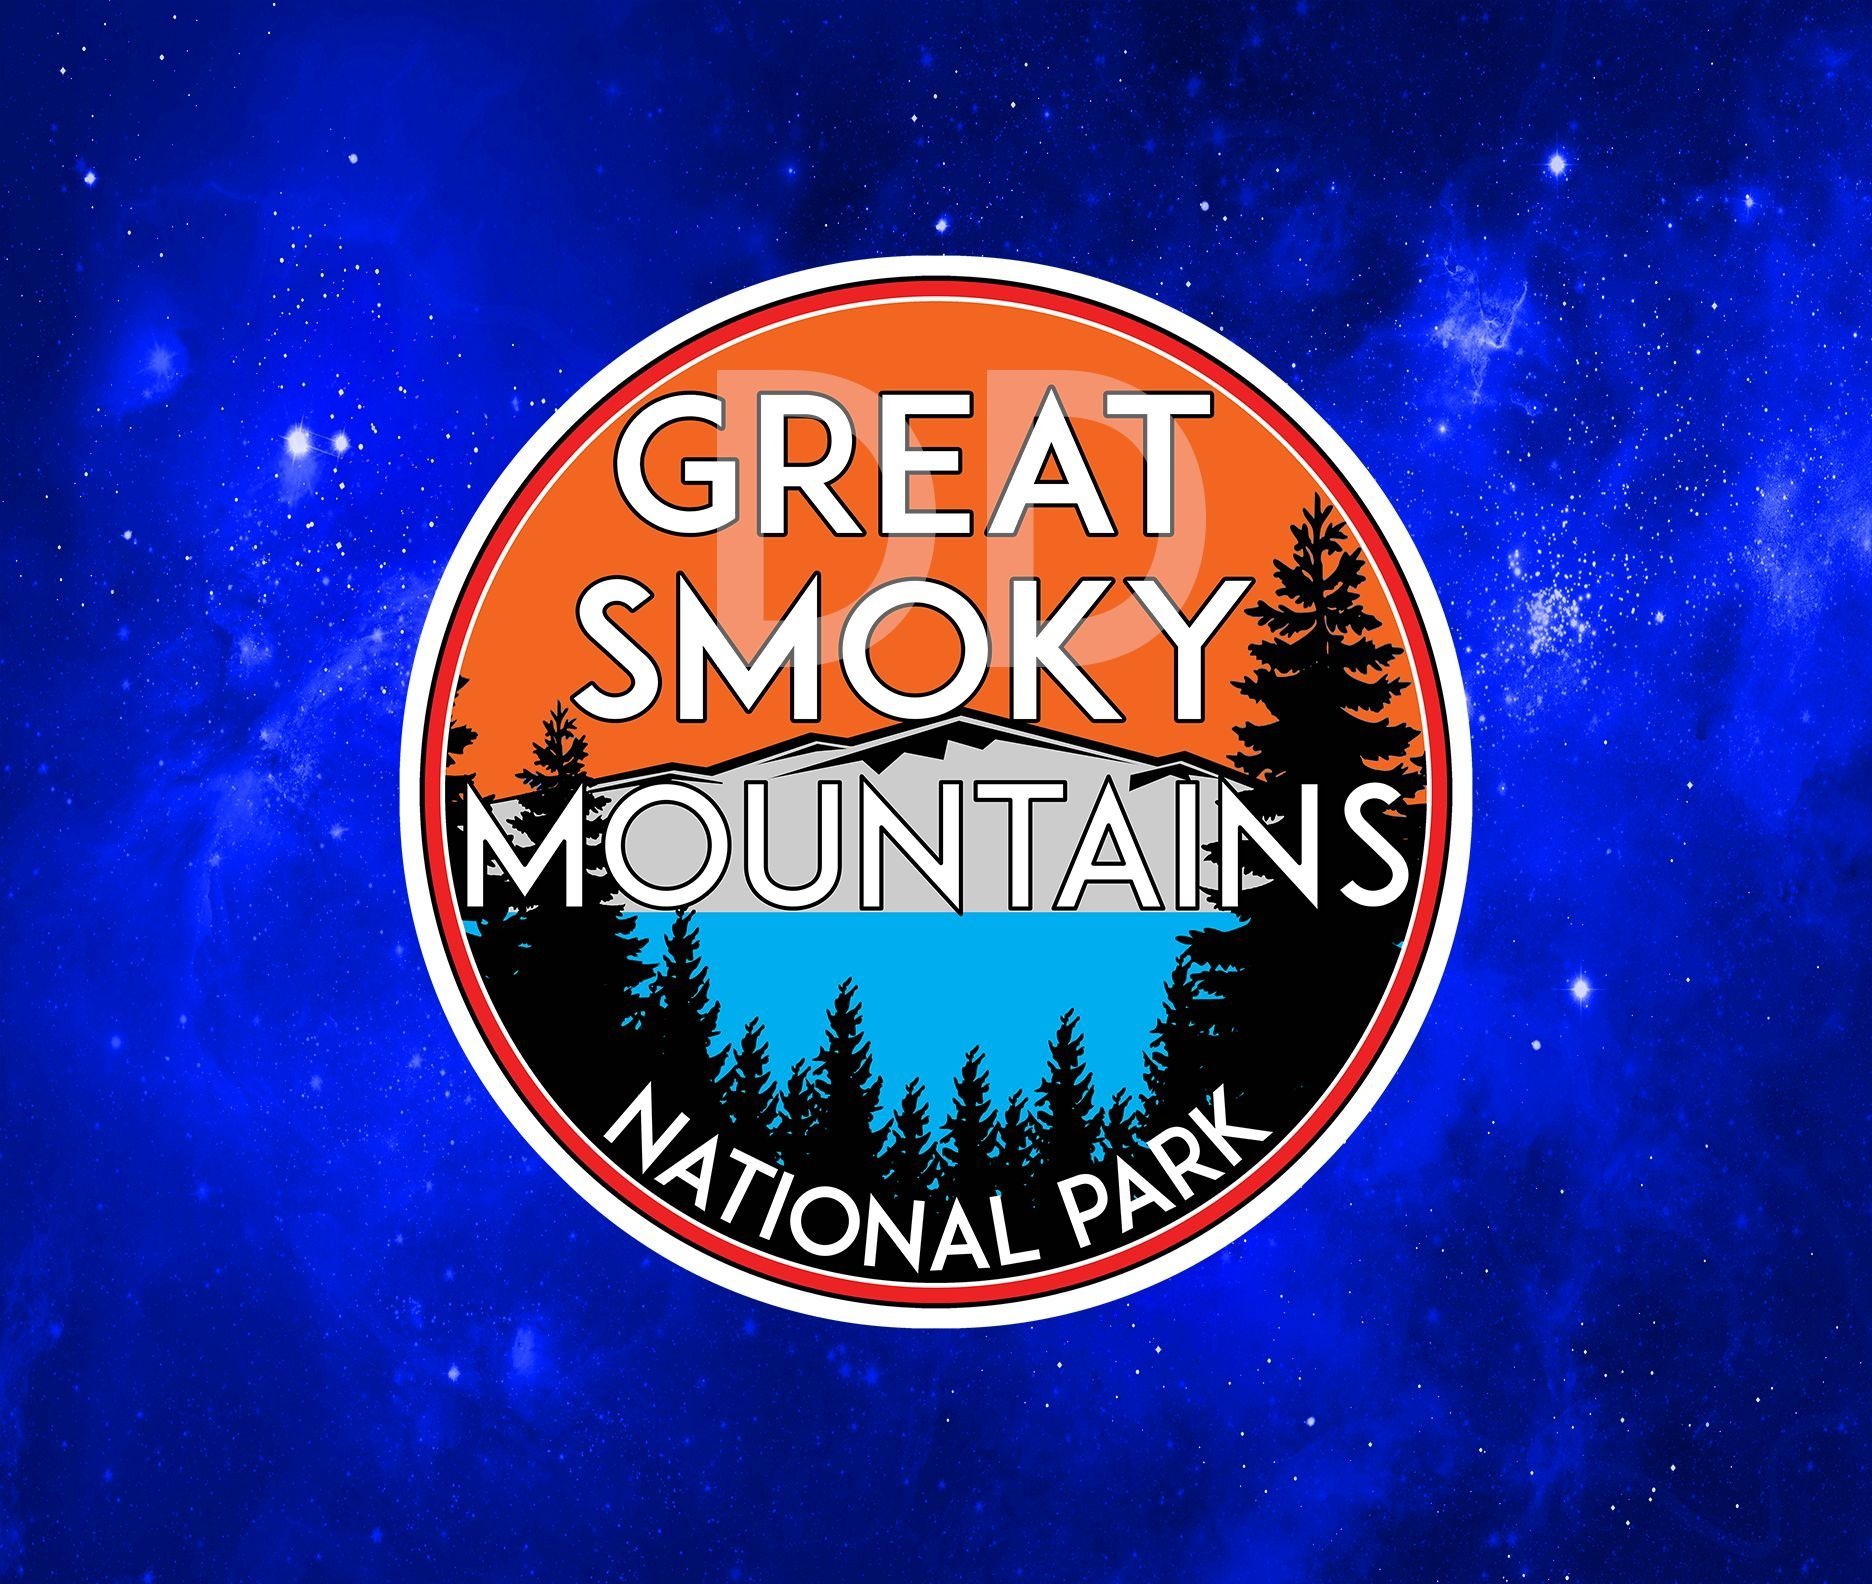 Great Smoky Mountains National Park Vinyl Decal Sticker 3 X 3 Vinyl Decals Great Smoky Mountains Old Volkswagen Van